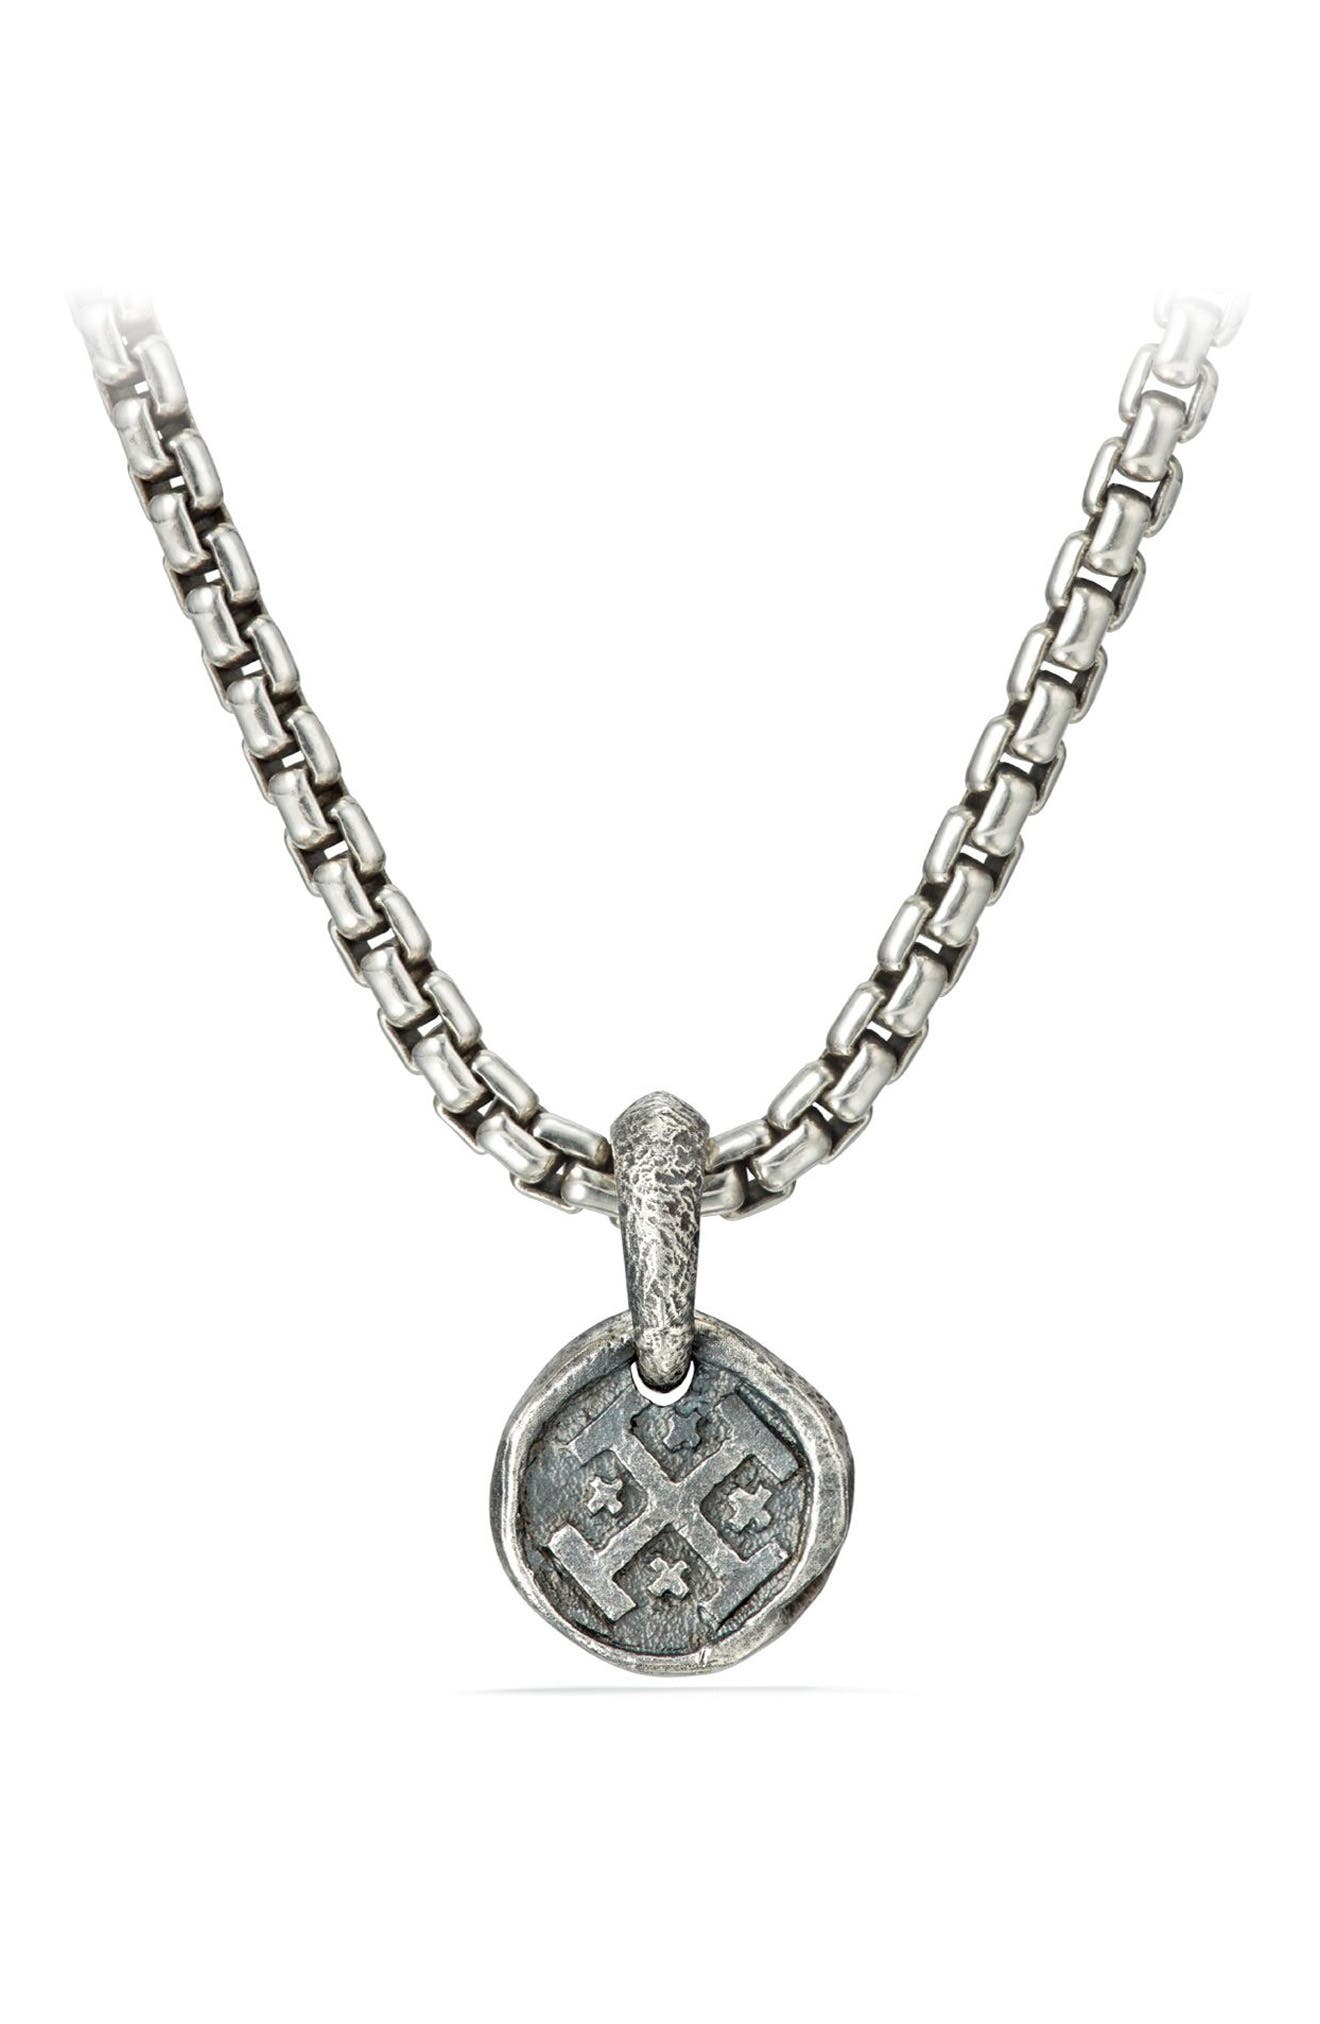 David Yurman Shipwreck Coin Amulet, 10.5mm